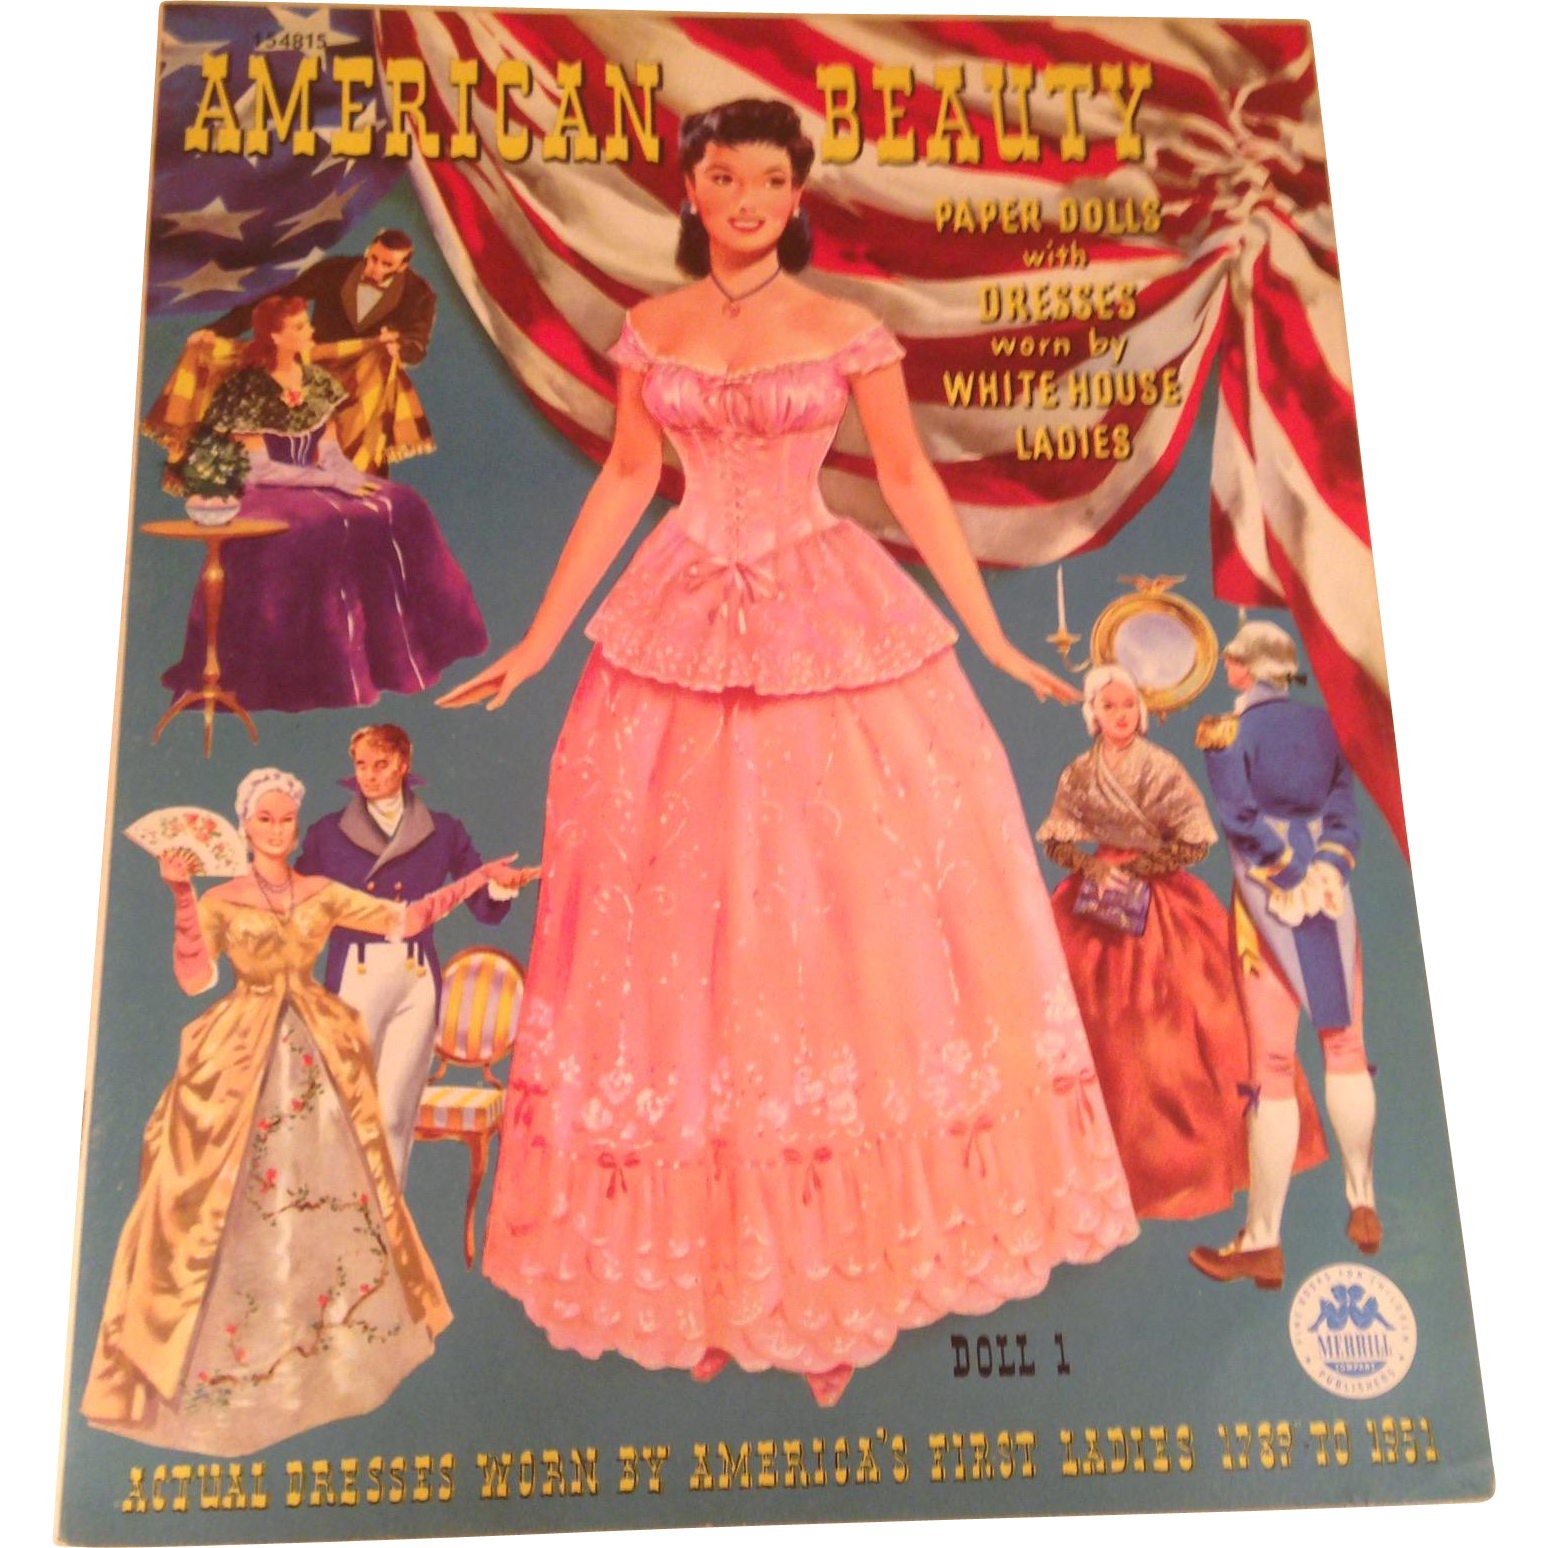 Mint 1951 American Beauty Paper dolls